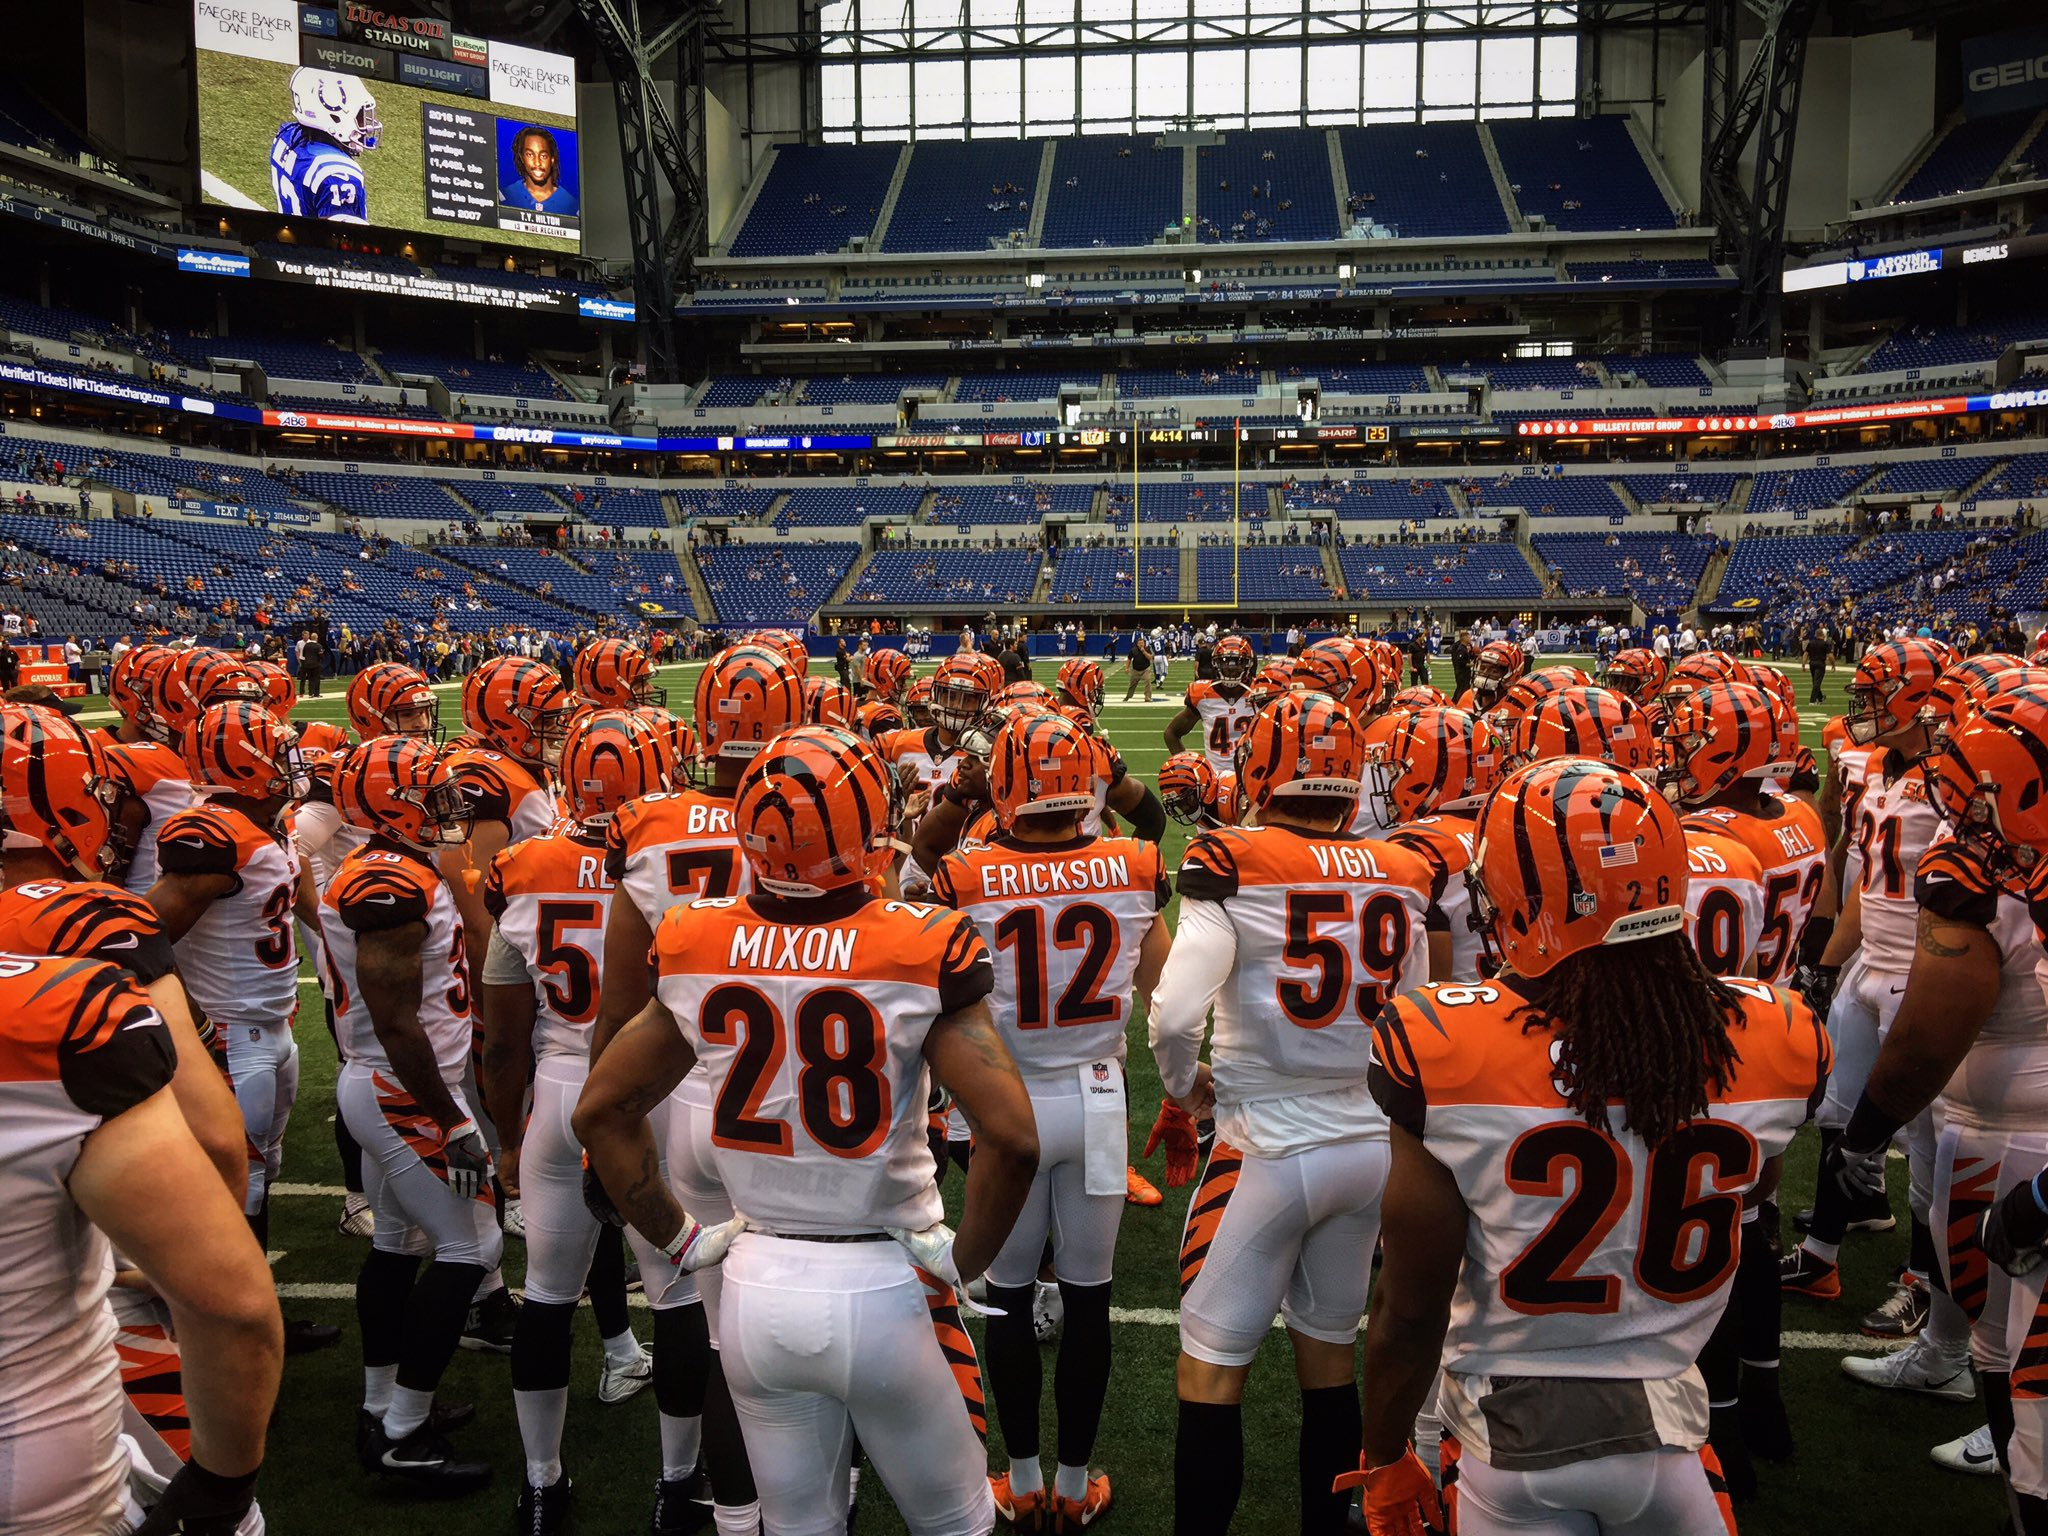 Game time. WHO DEY! #CINvsIND https://t.co/HOO85xARNY